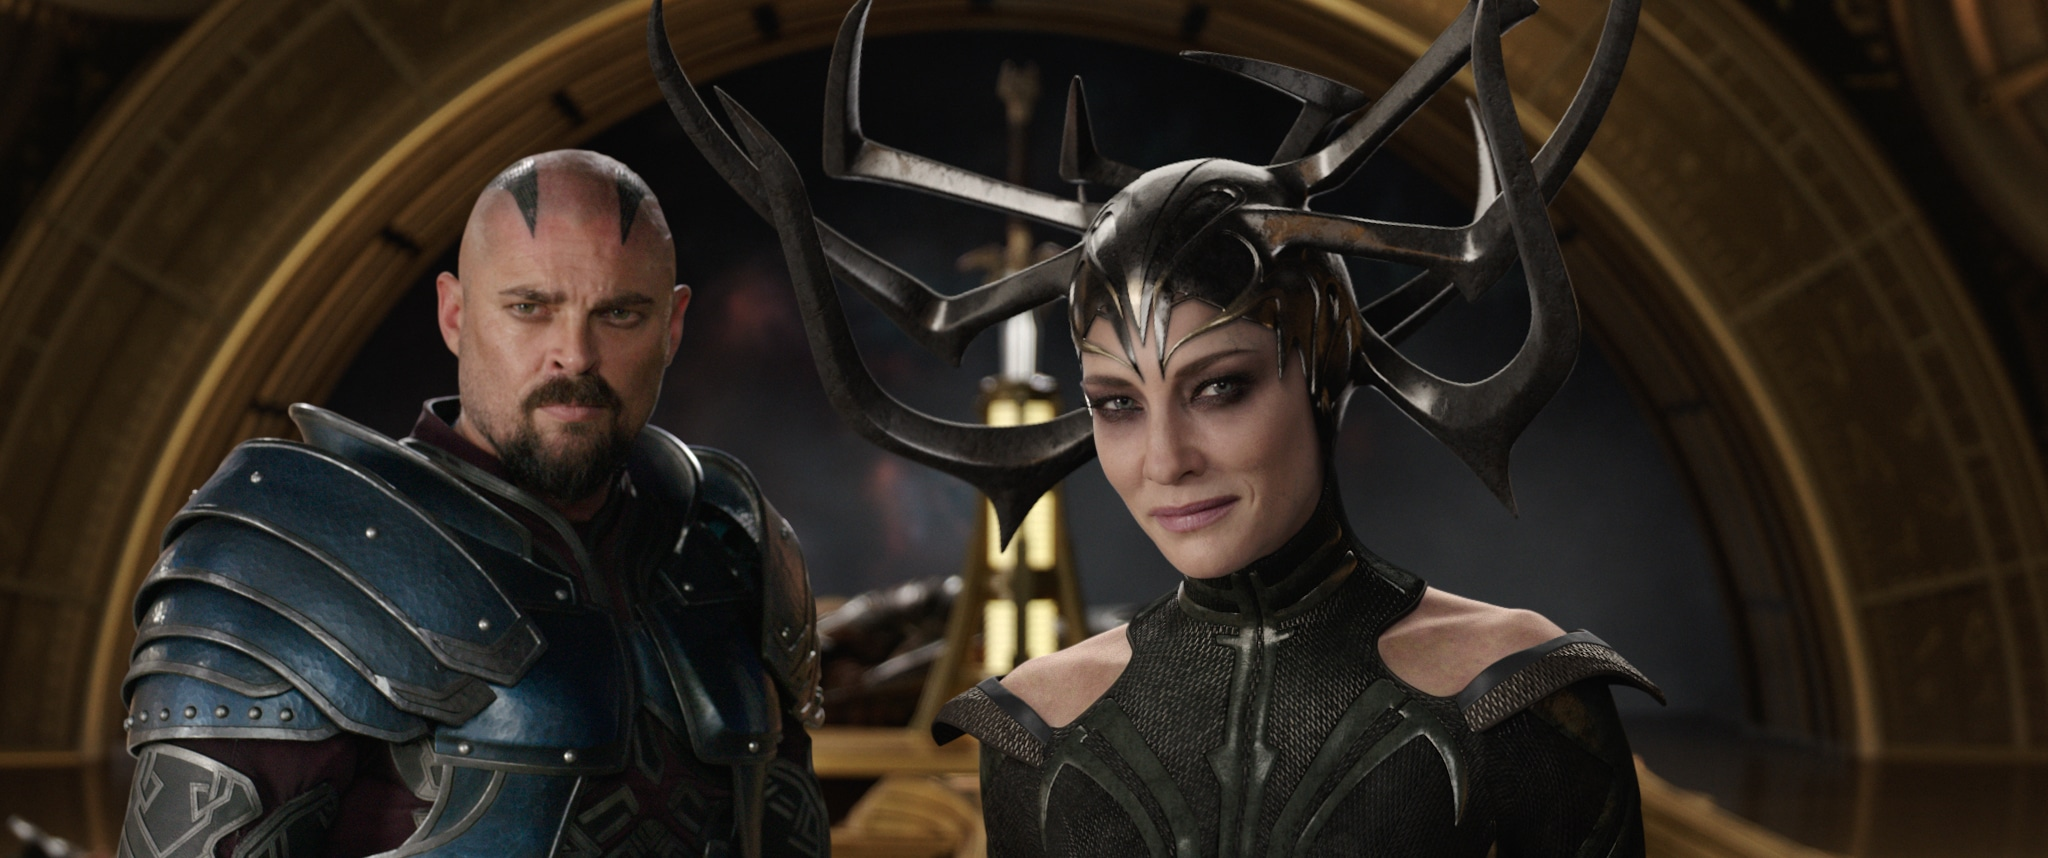 """In Marvel's Thor: Ragnarok, Karl Urban portrays the iconic character of Skurge, widely popular as """"the Executioner."""" See more interesting info here:"""